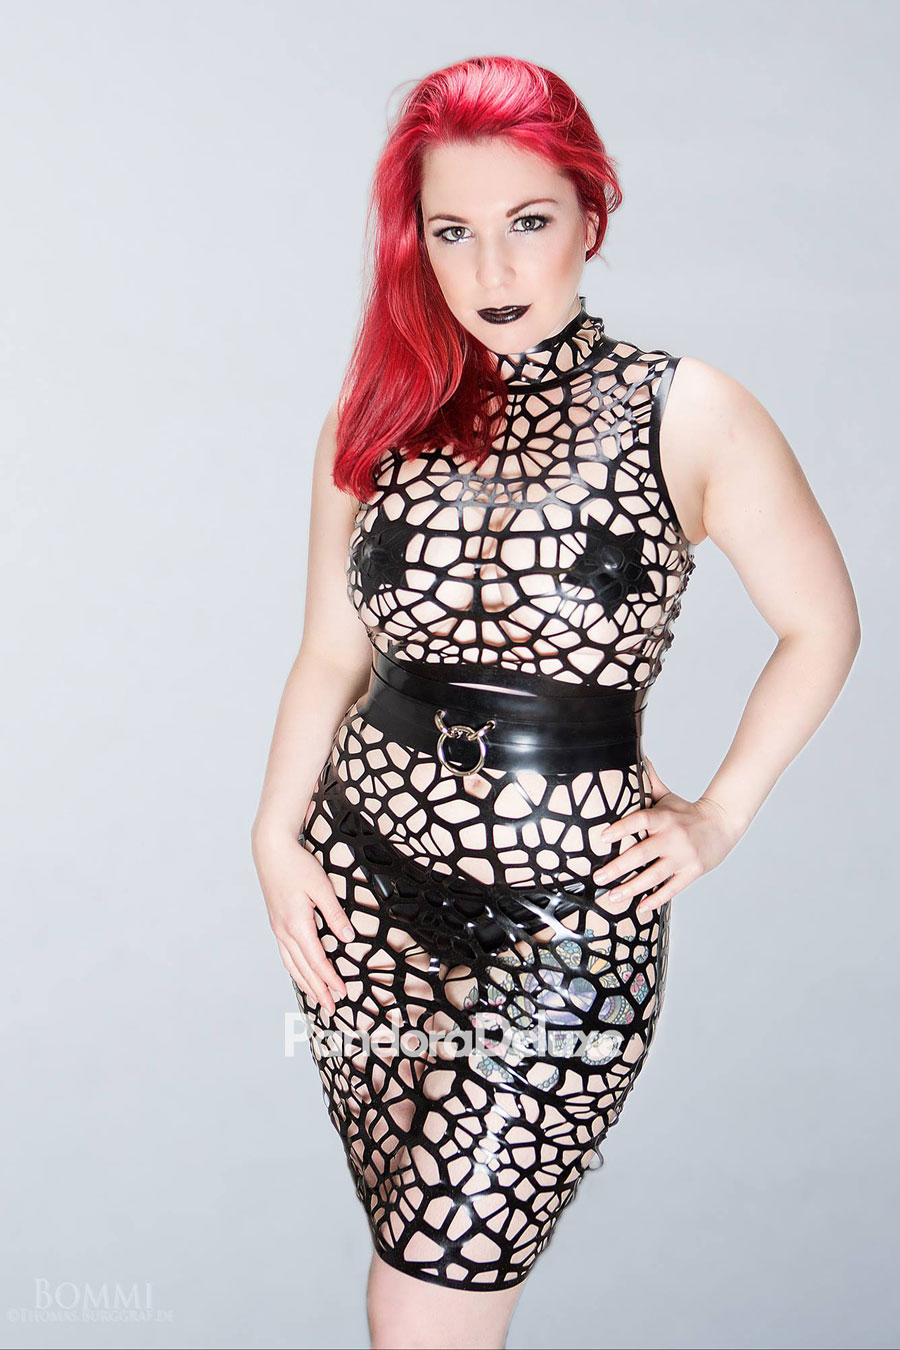 Astra Organic Structure Net Latex Crop Top by Pandora Deluxe